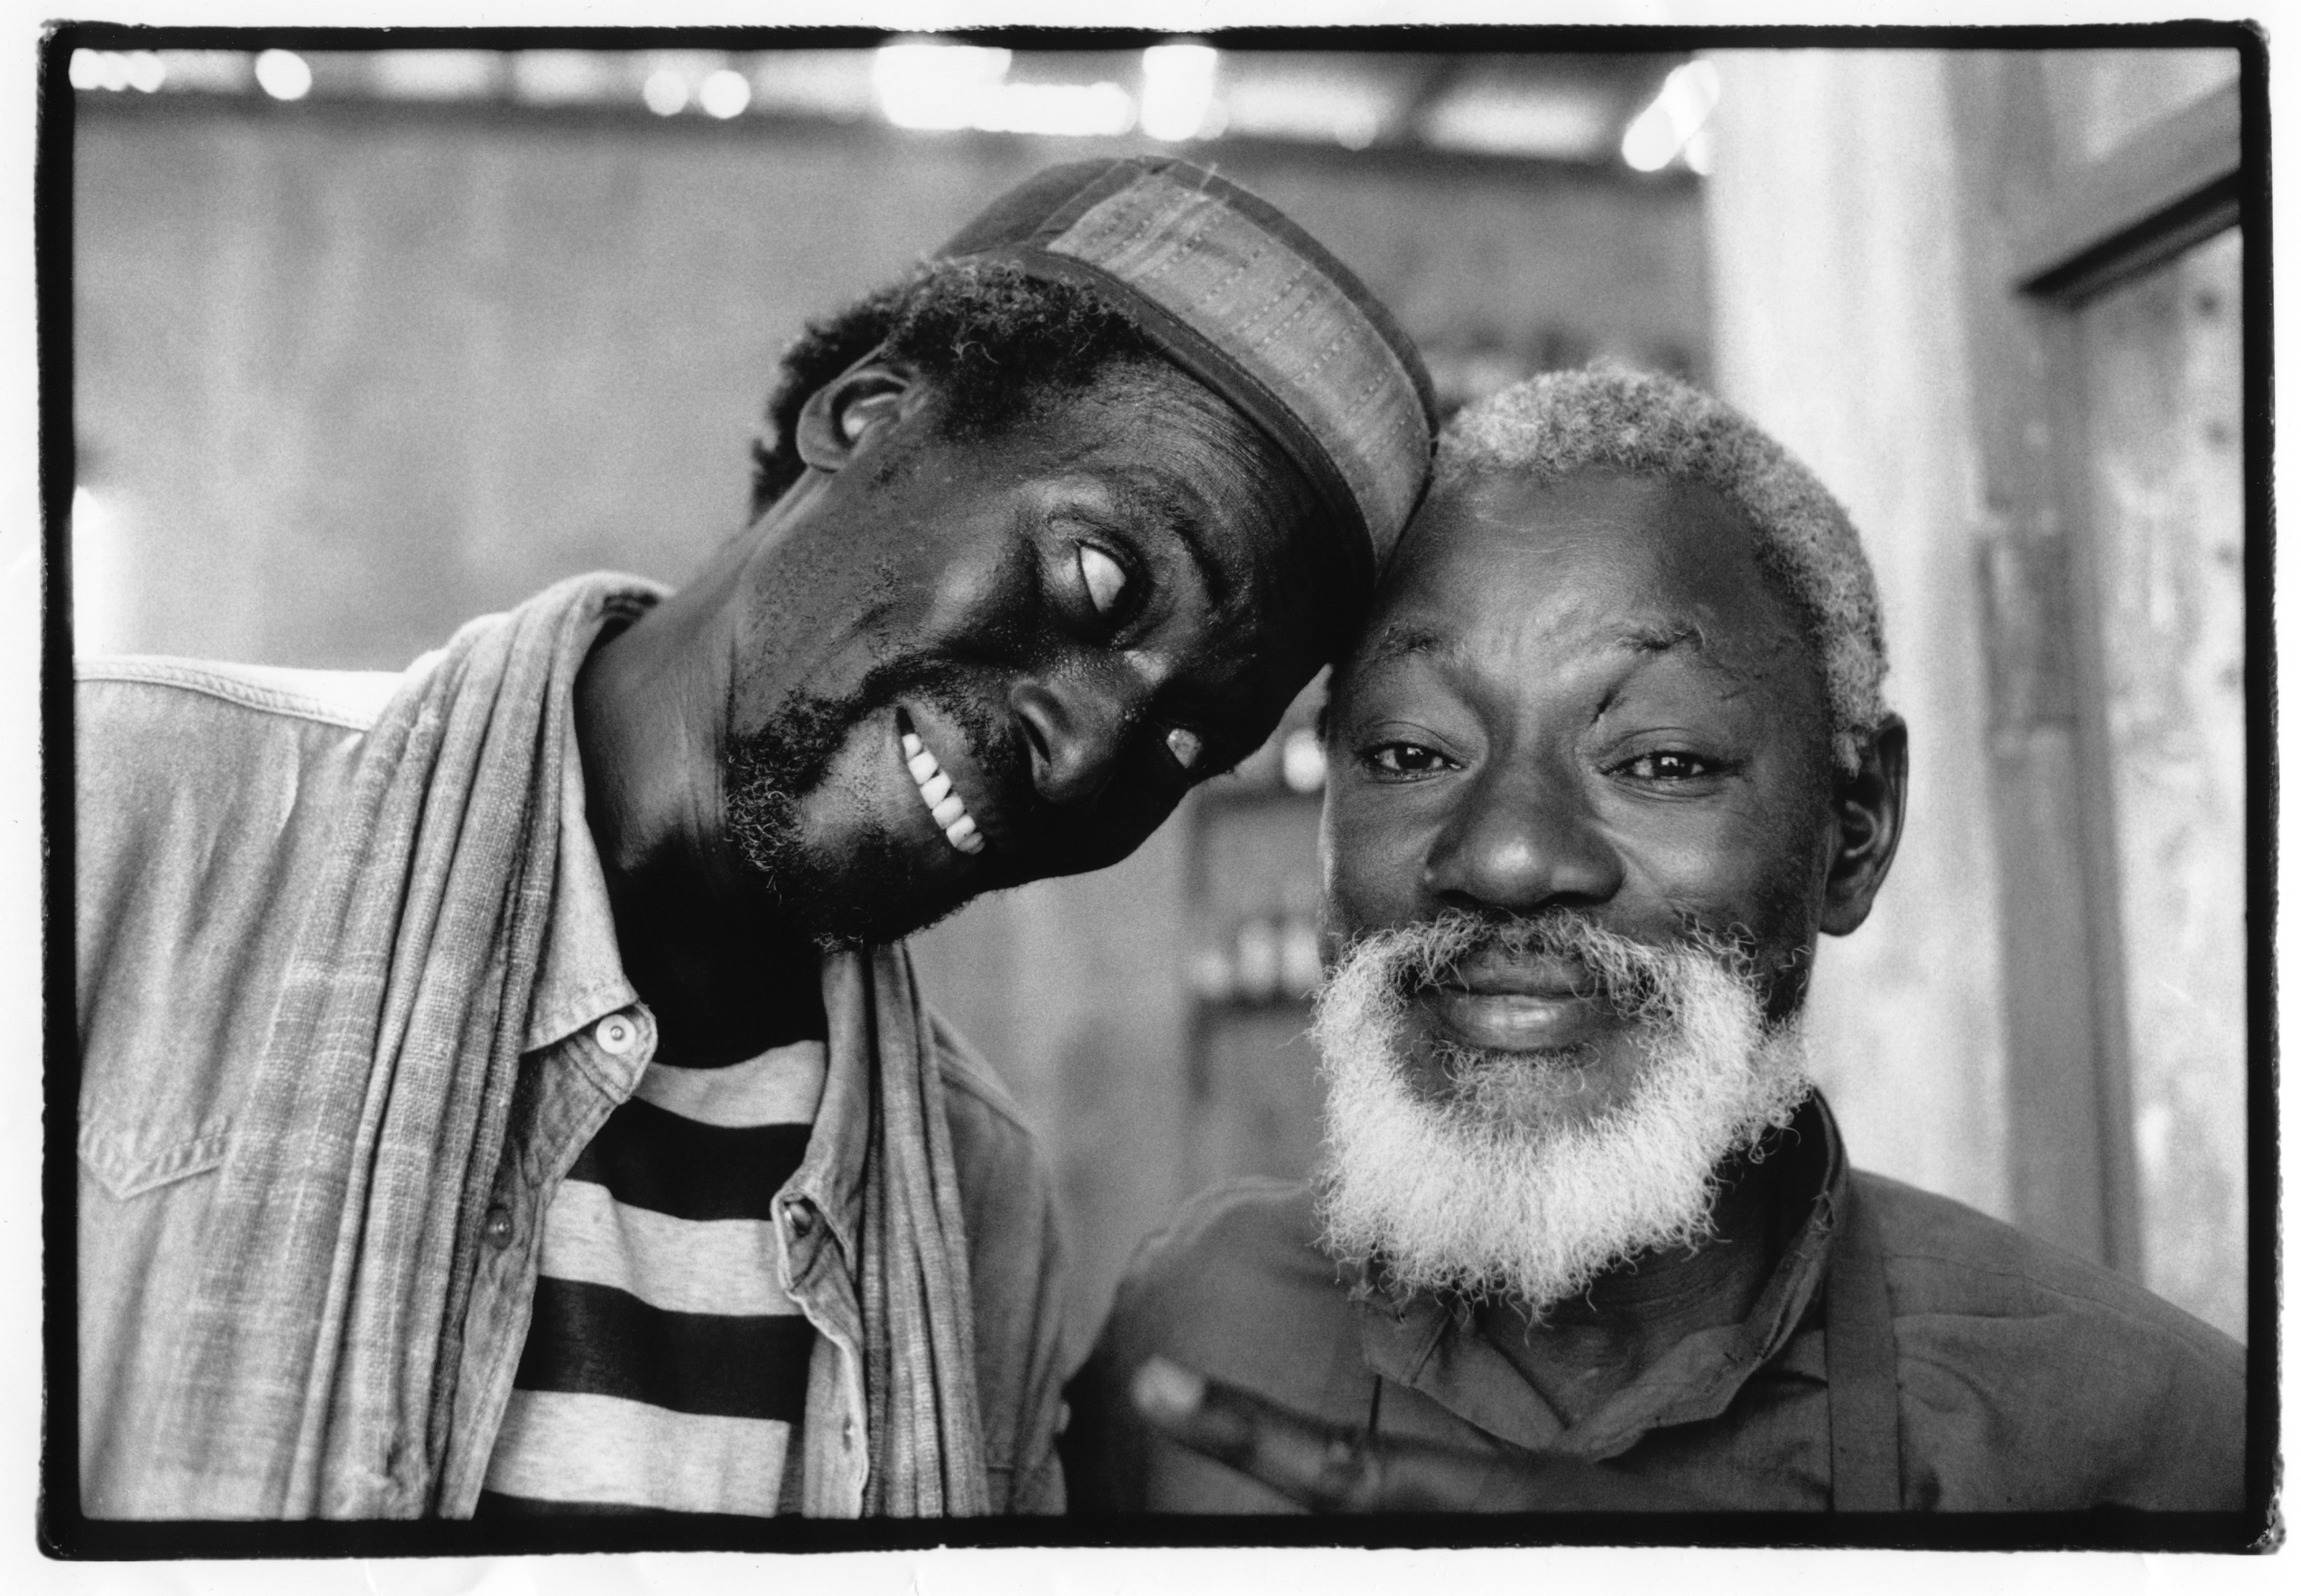 """Shooting of """"Hyenes"""" , directed by Djibril Diop Mambety 1990 Official Selection of Cannes Filmfestival 1992. Film based on """"Le visite de la vieille dame"""" de Friedrich DŸrrenmatt. Djibril Diop Mambety with Mansour Diouf , his main Actor"""